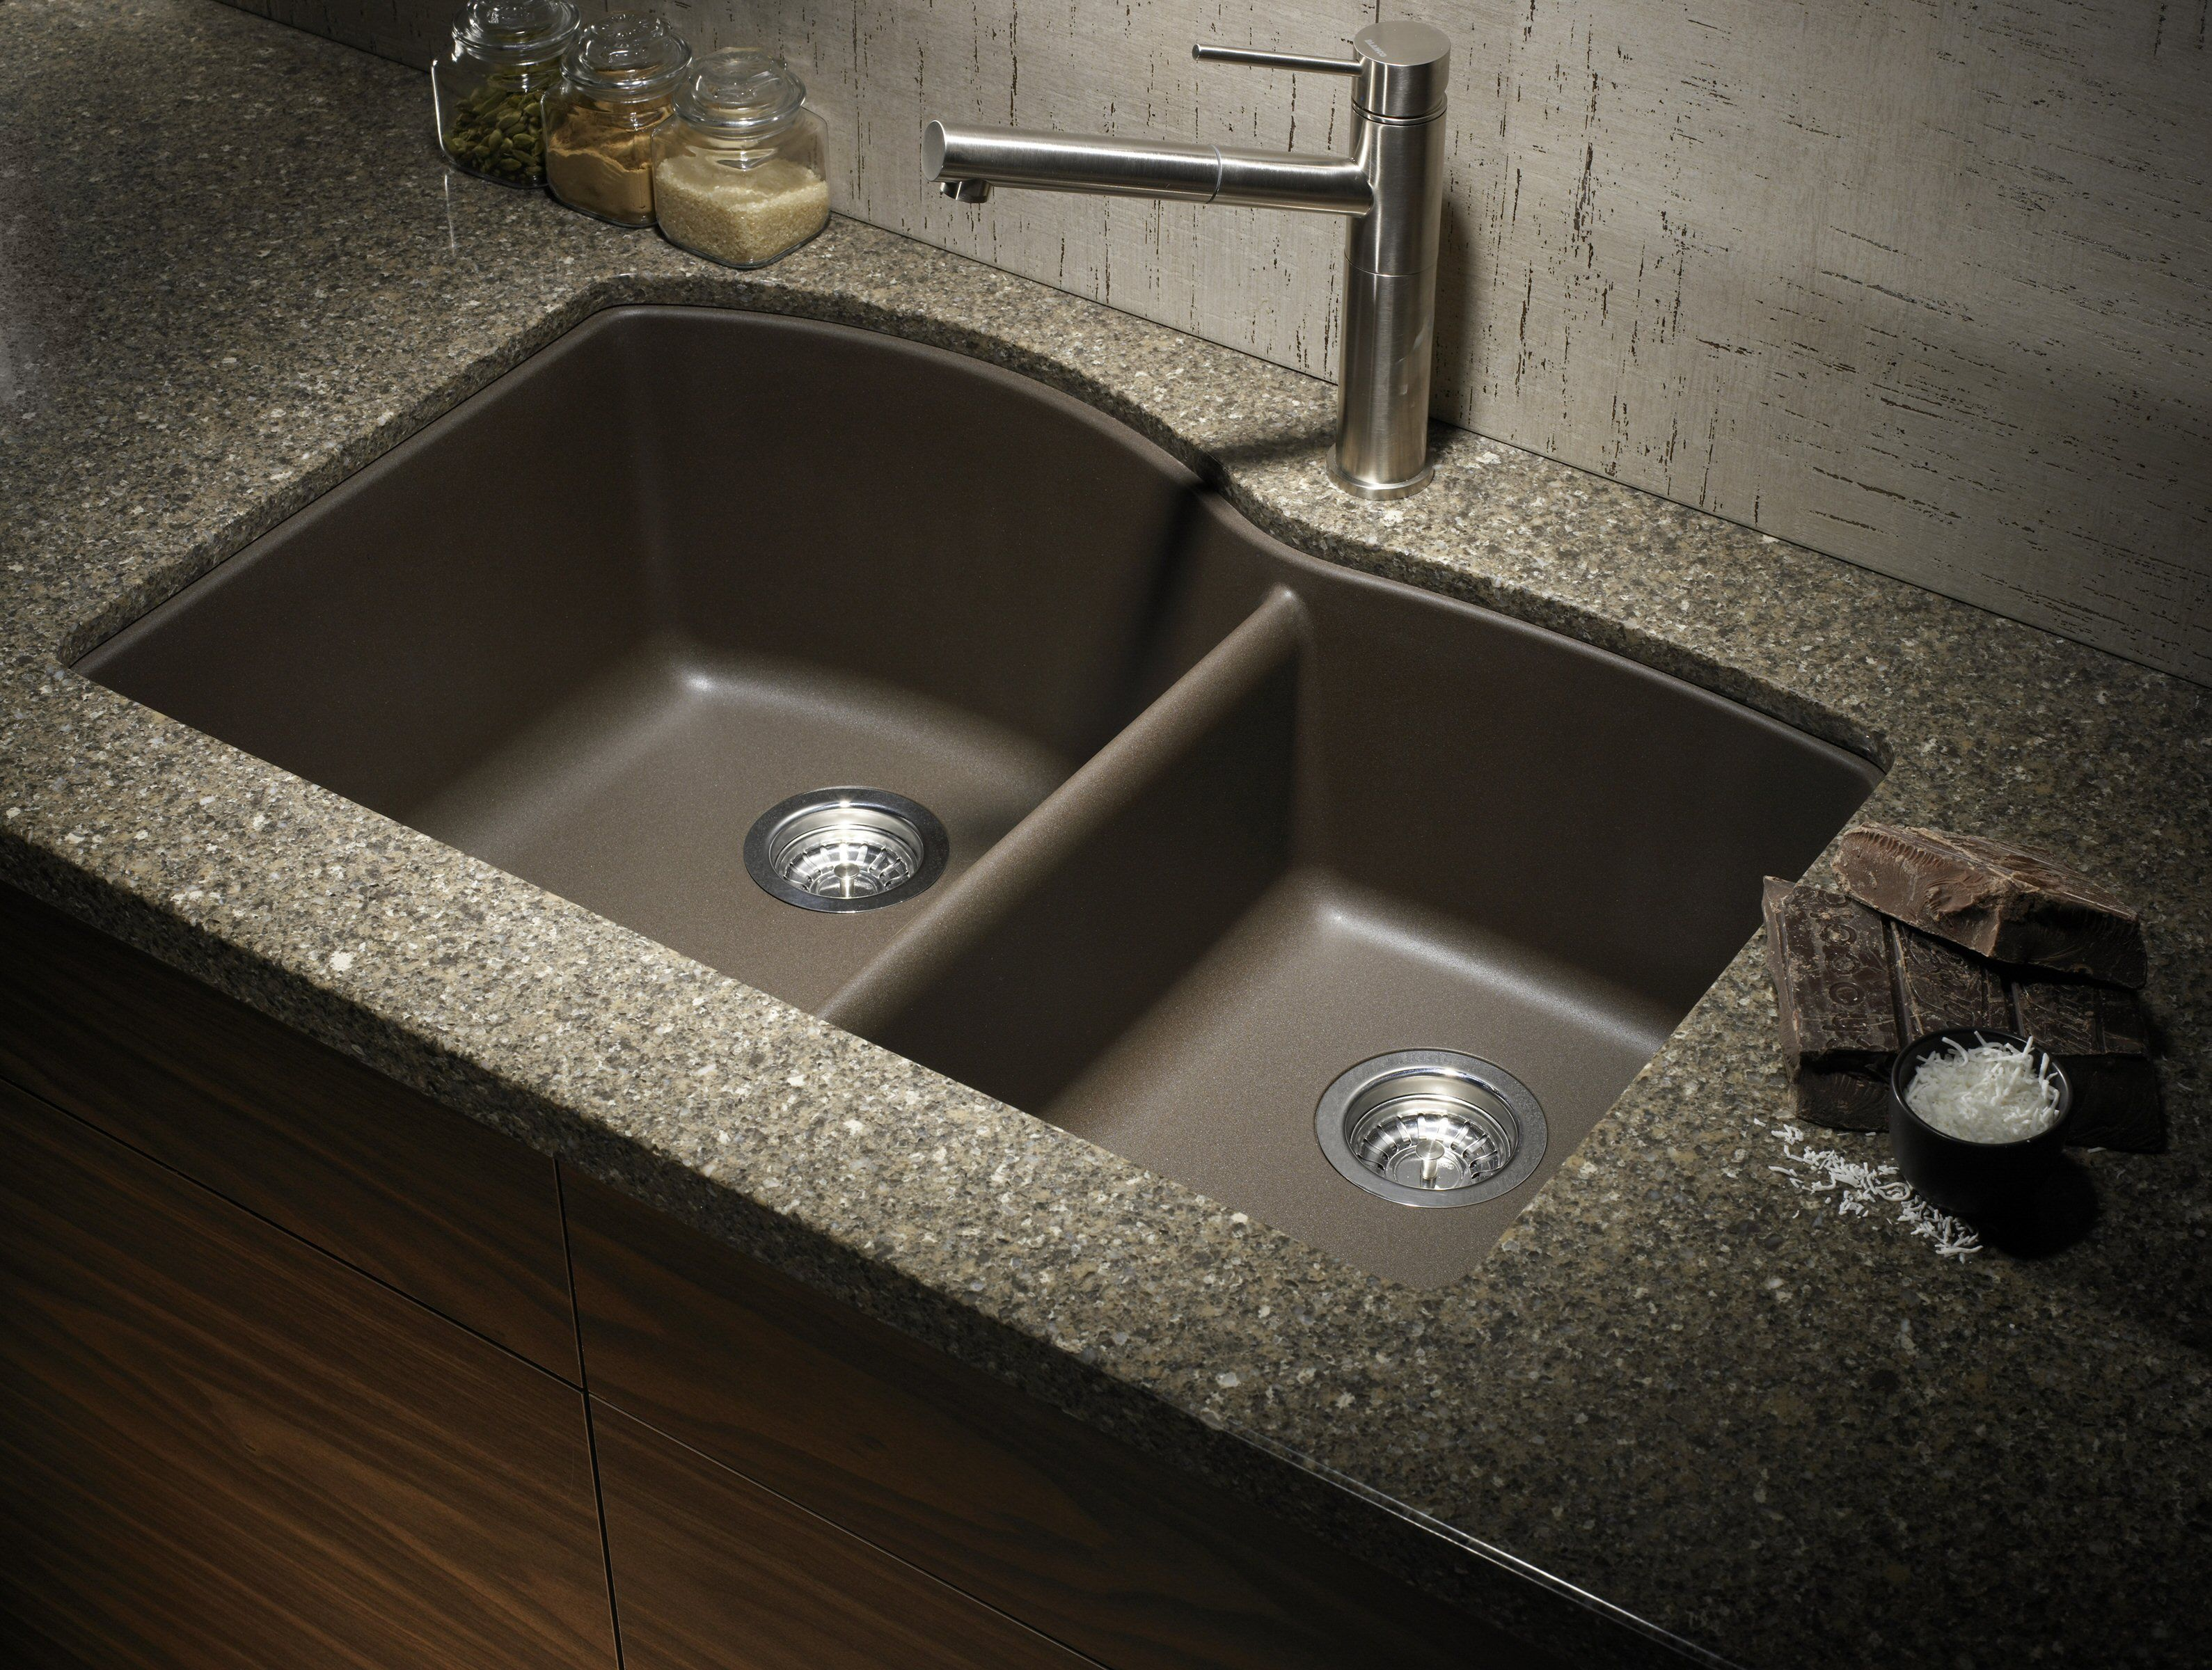 Composite Granite Kitchen Sinks How To Clean A Granite Composite Sink Composite Sinks Double